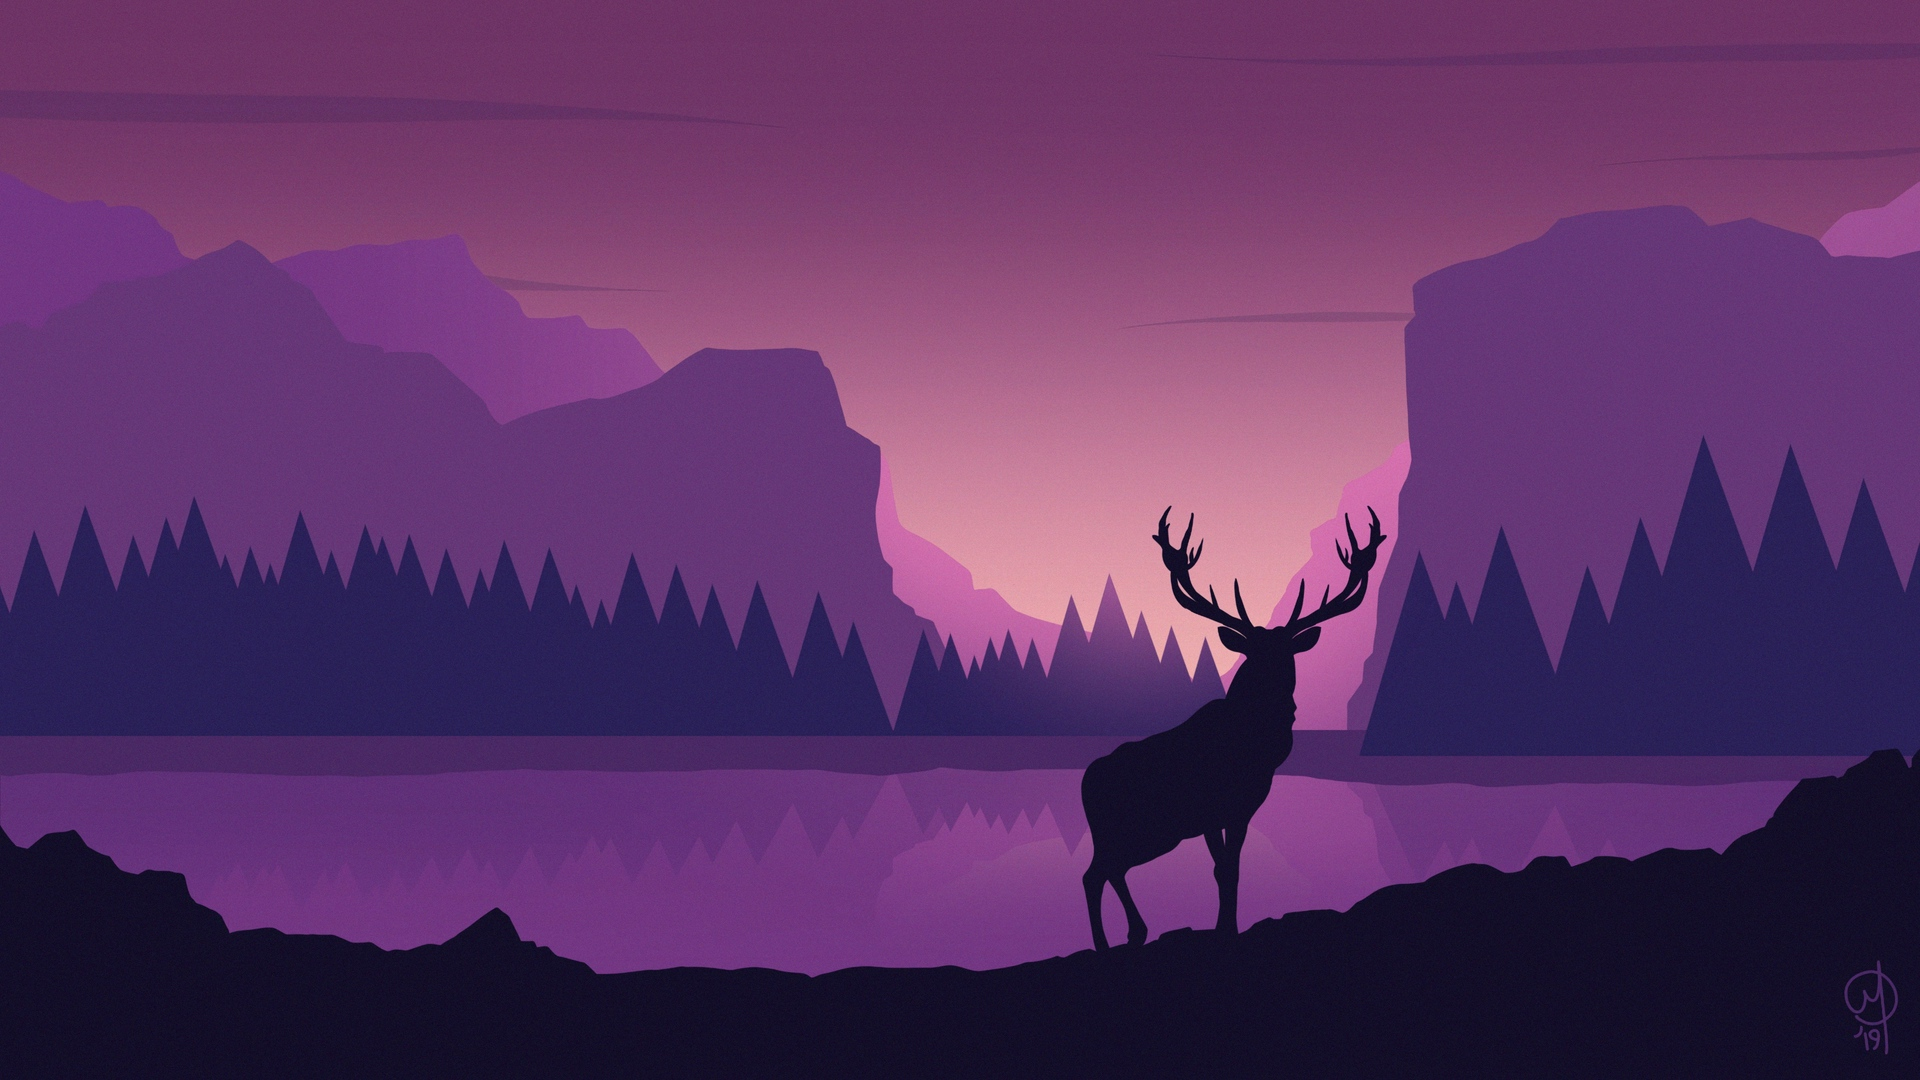 deer_art_vector_134088_1920x1080